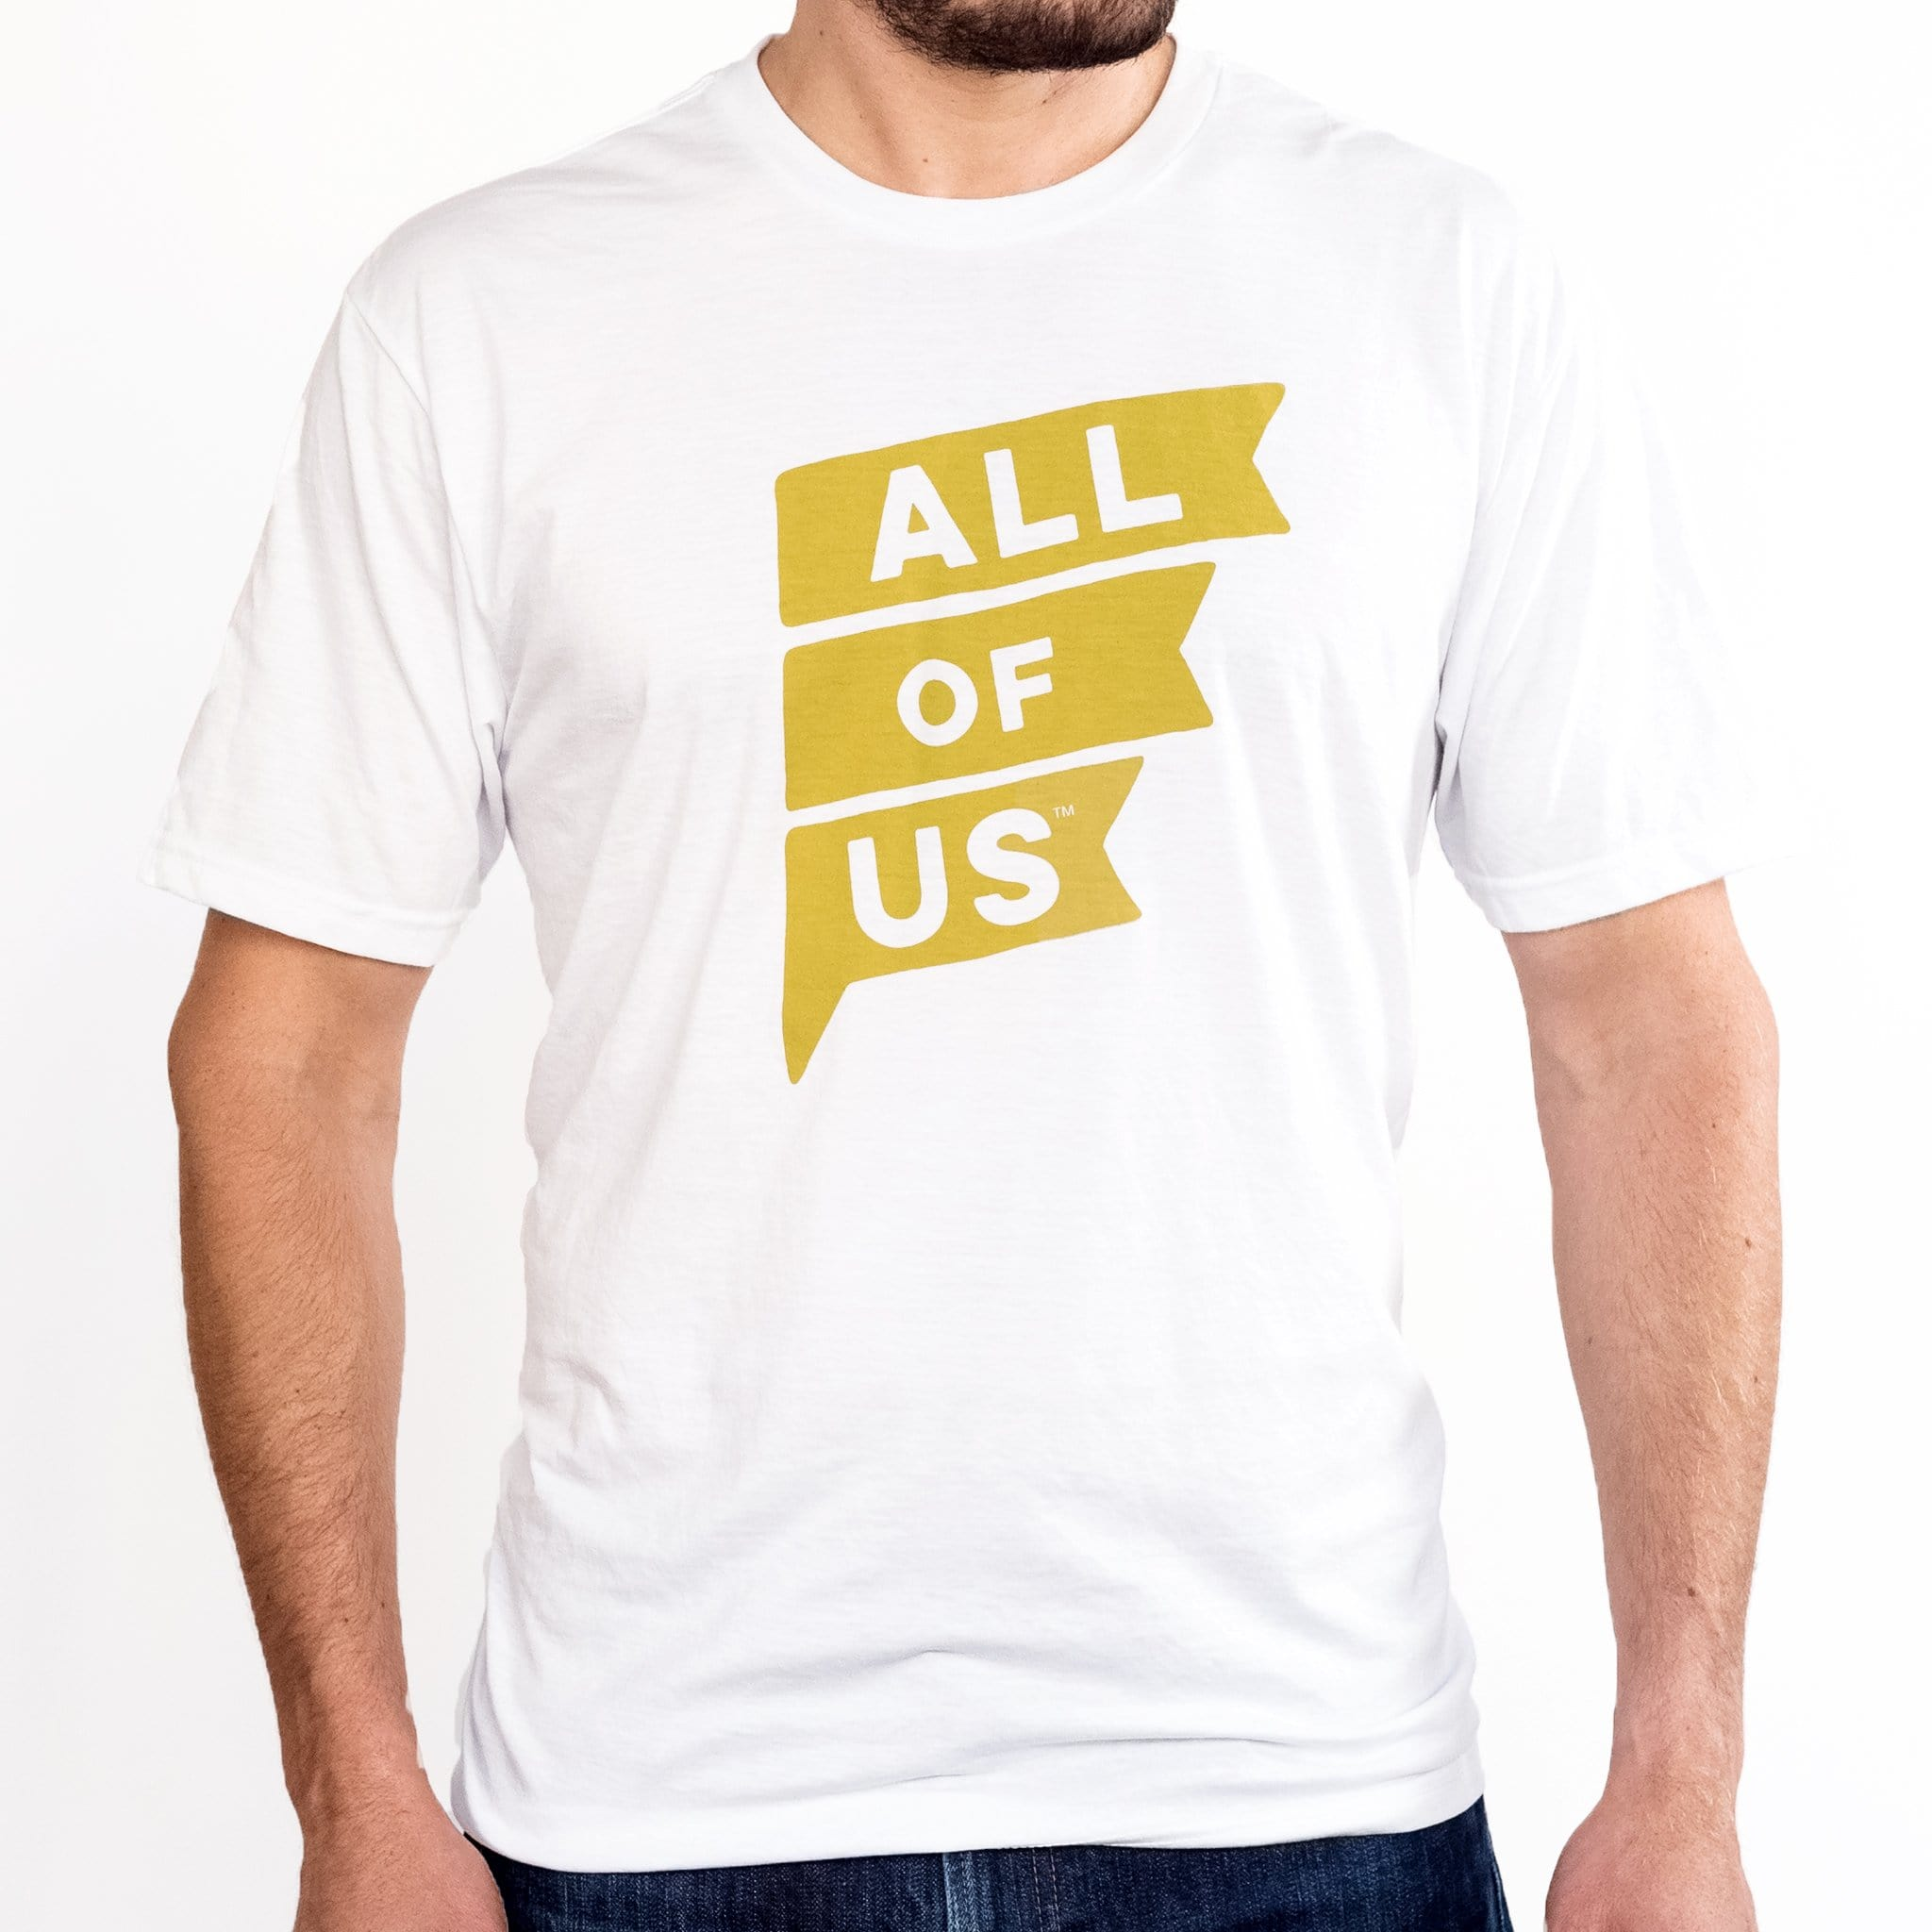 25e5e0b08 Men's All of Us White Tri-Blend Crew Tee